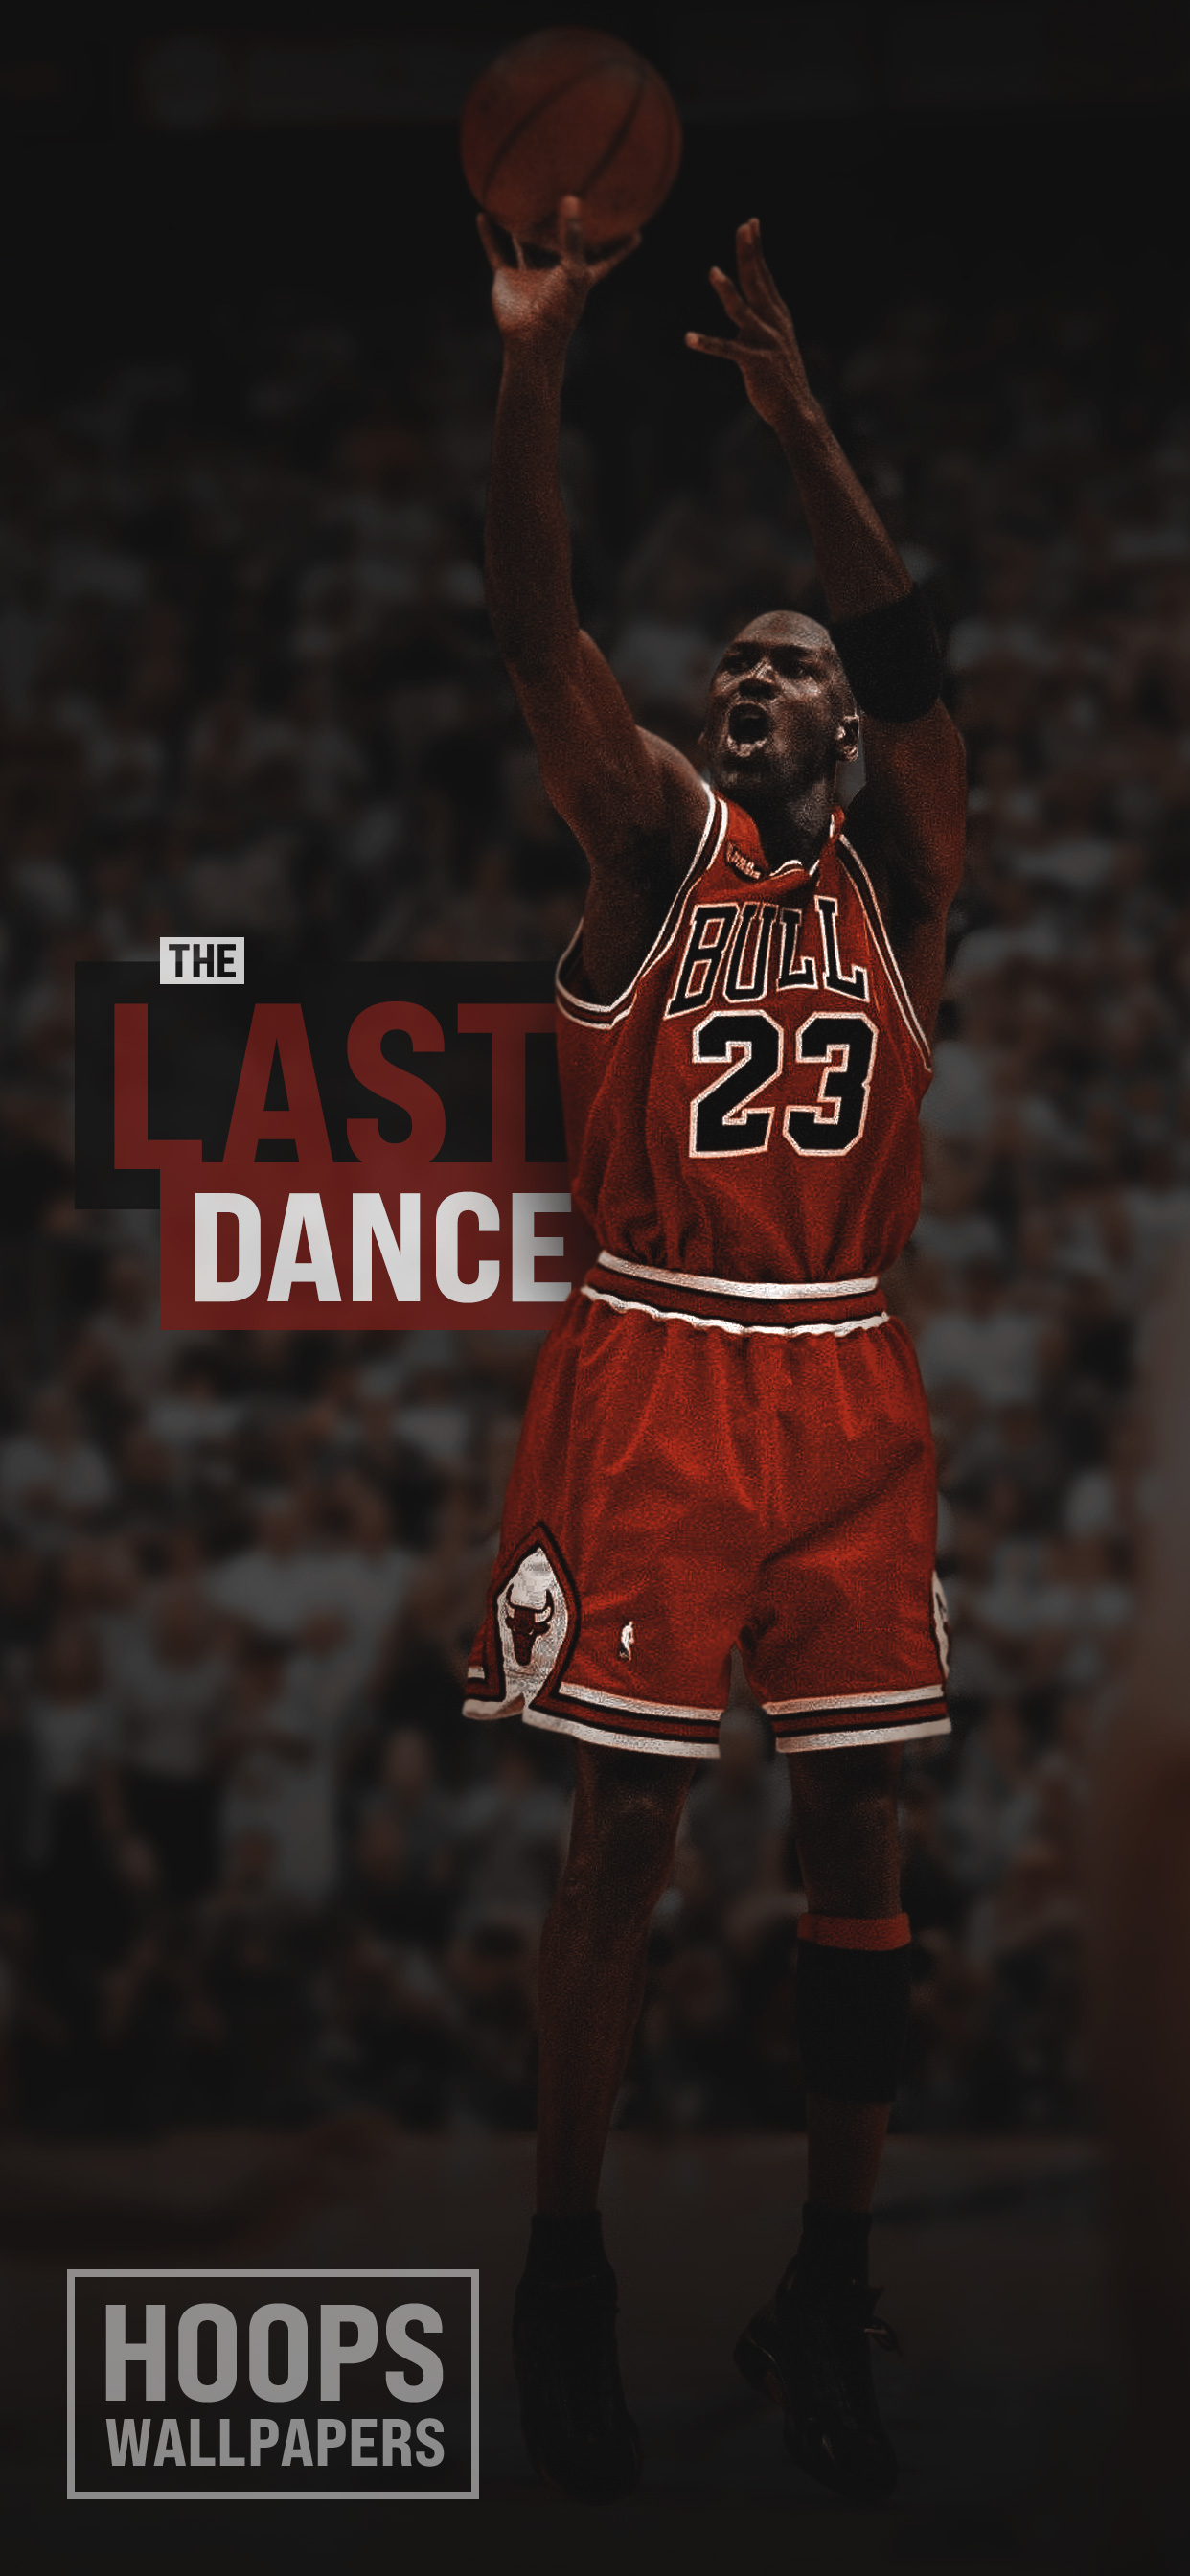 Hoopswallpapers Com Get The Latest Hd And Mobile Nba Wallpapers Today Blog Archive New Michael Jordan The Last Dance Wallpaper